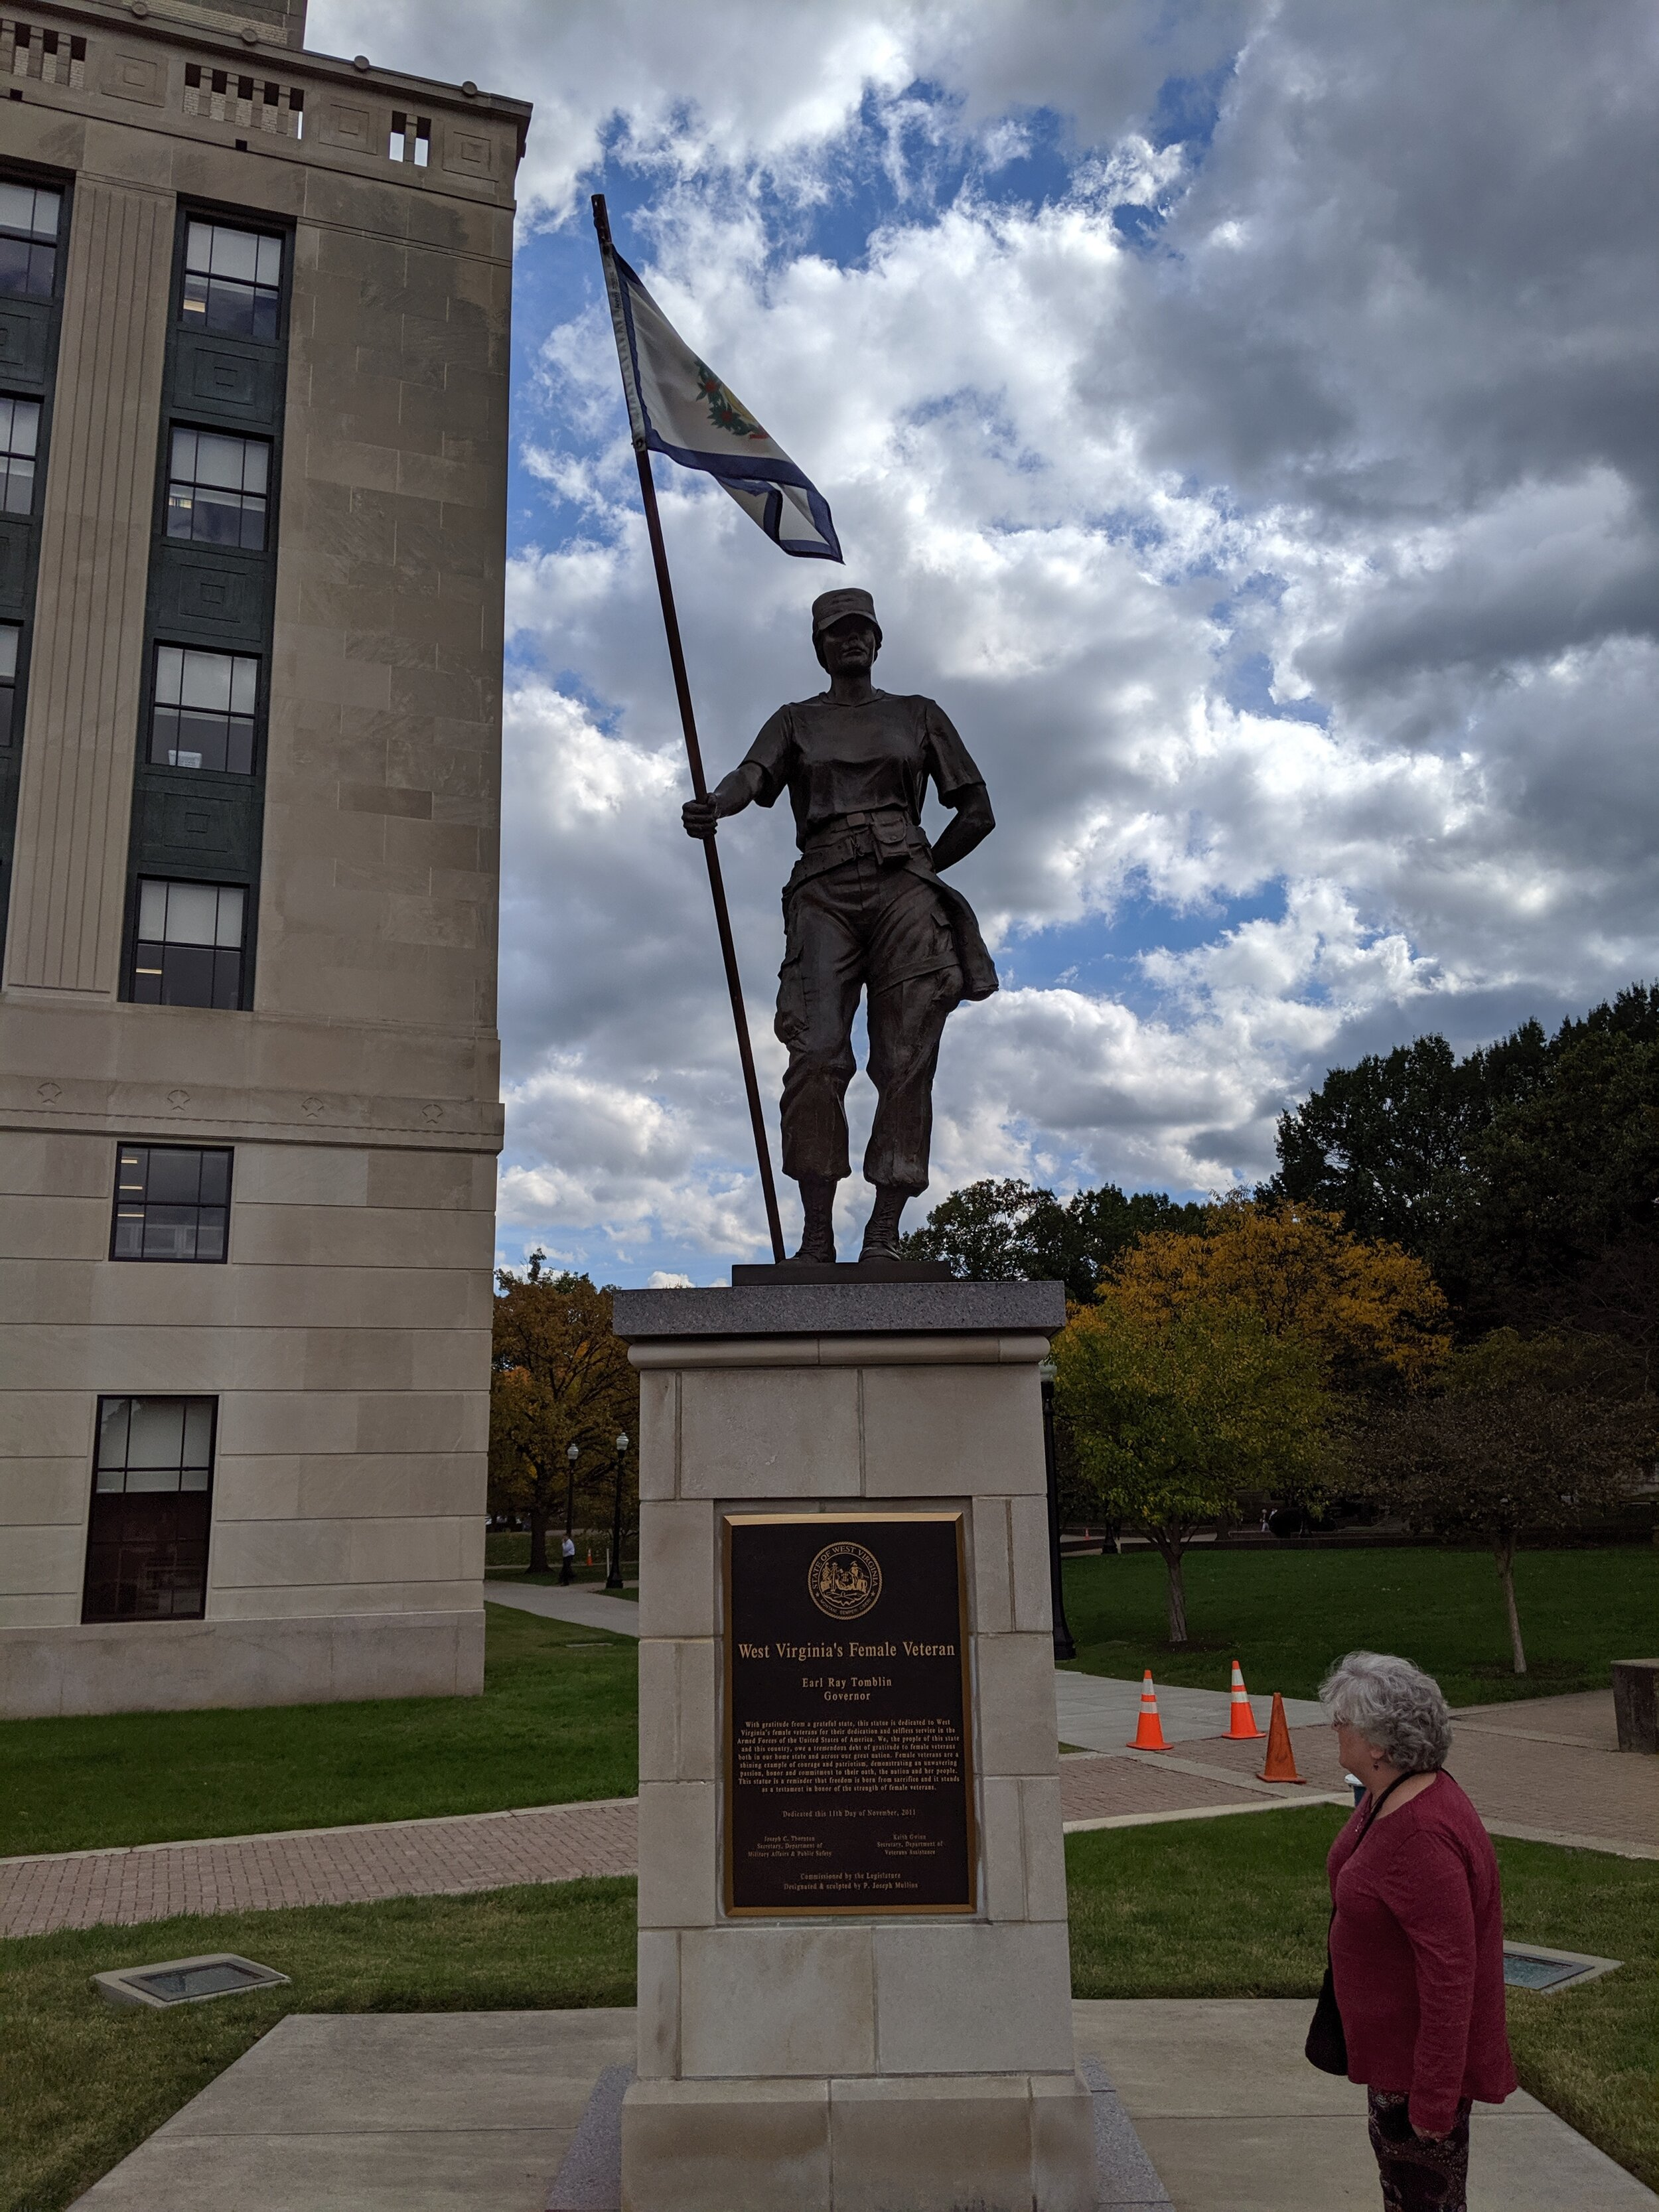 Next to the prerequisite veterans' statues is one celebrating women vets. Mindy noted that the names of those responsible for getting it in place were all men…